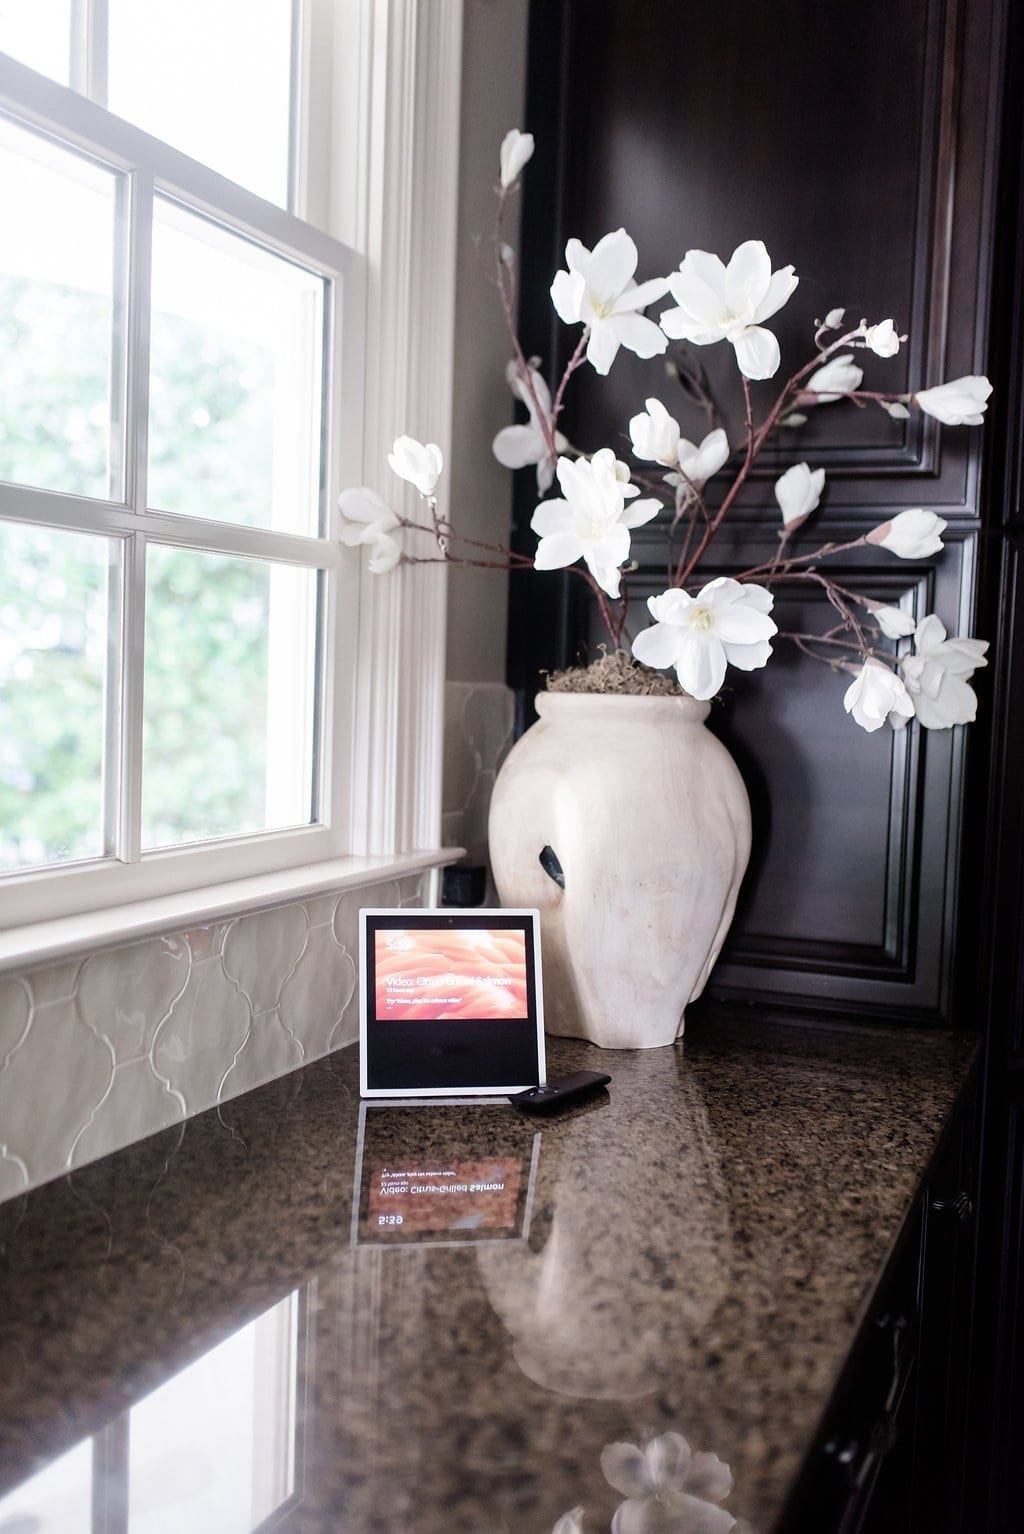 Amazon Alexa Show with wood vase and faux magnolias.